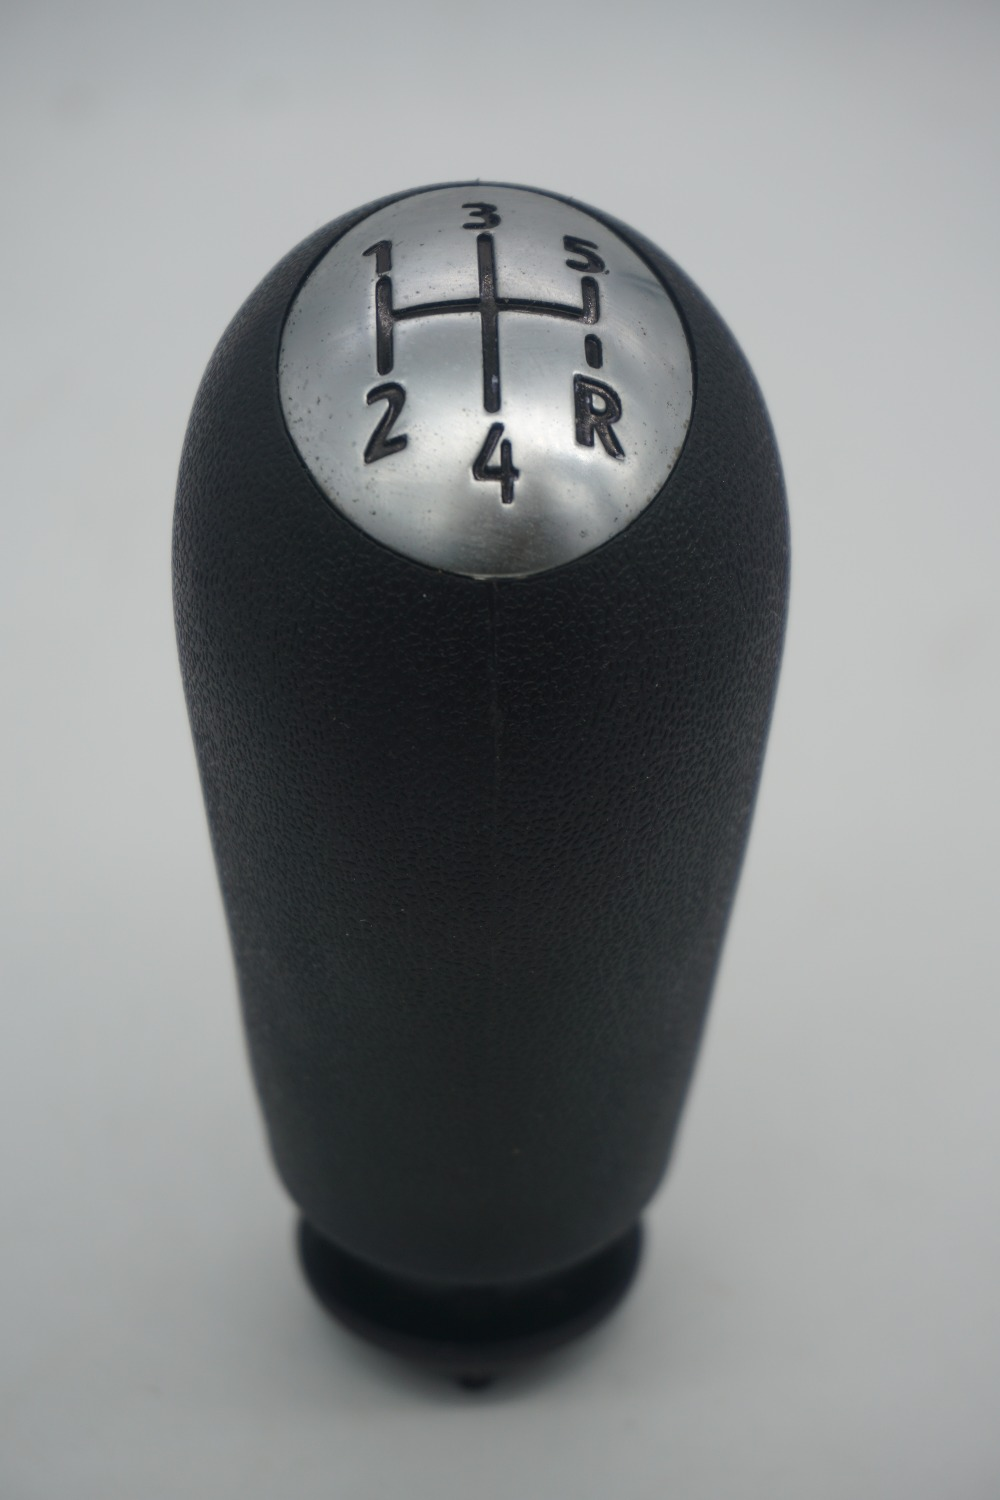 Fast Shipping New 5 Speed Car Gear Shift Knob Head For Renault